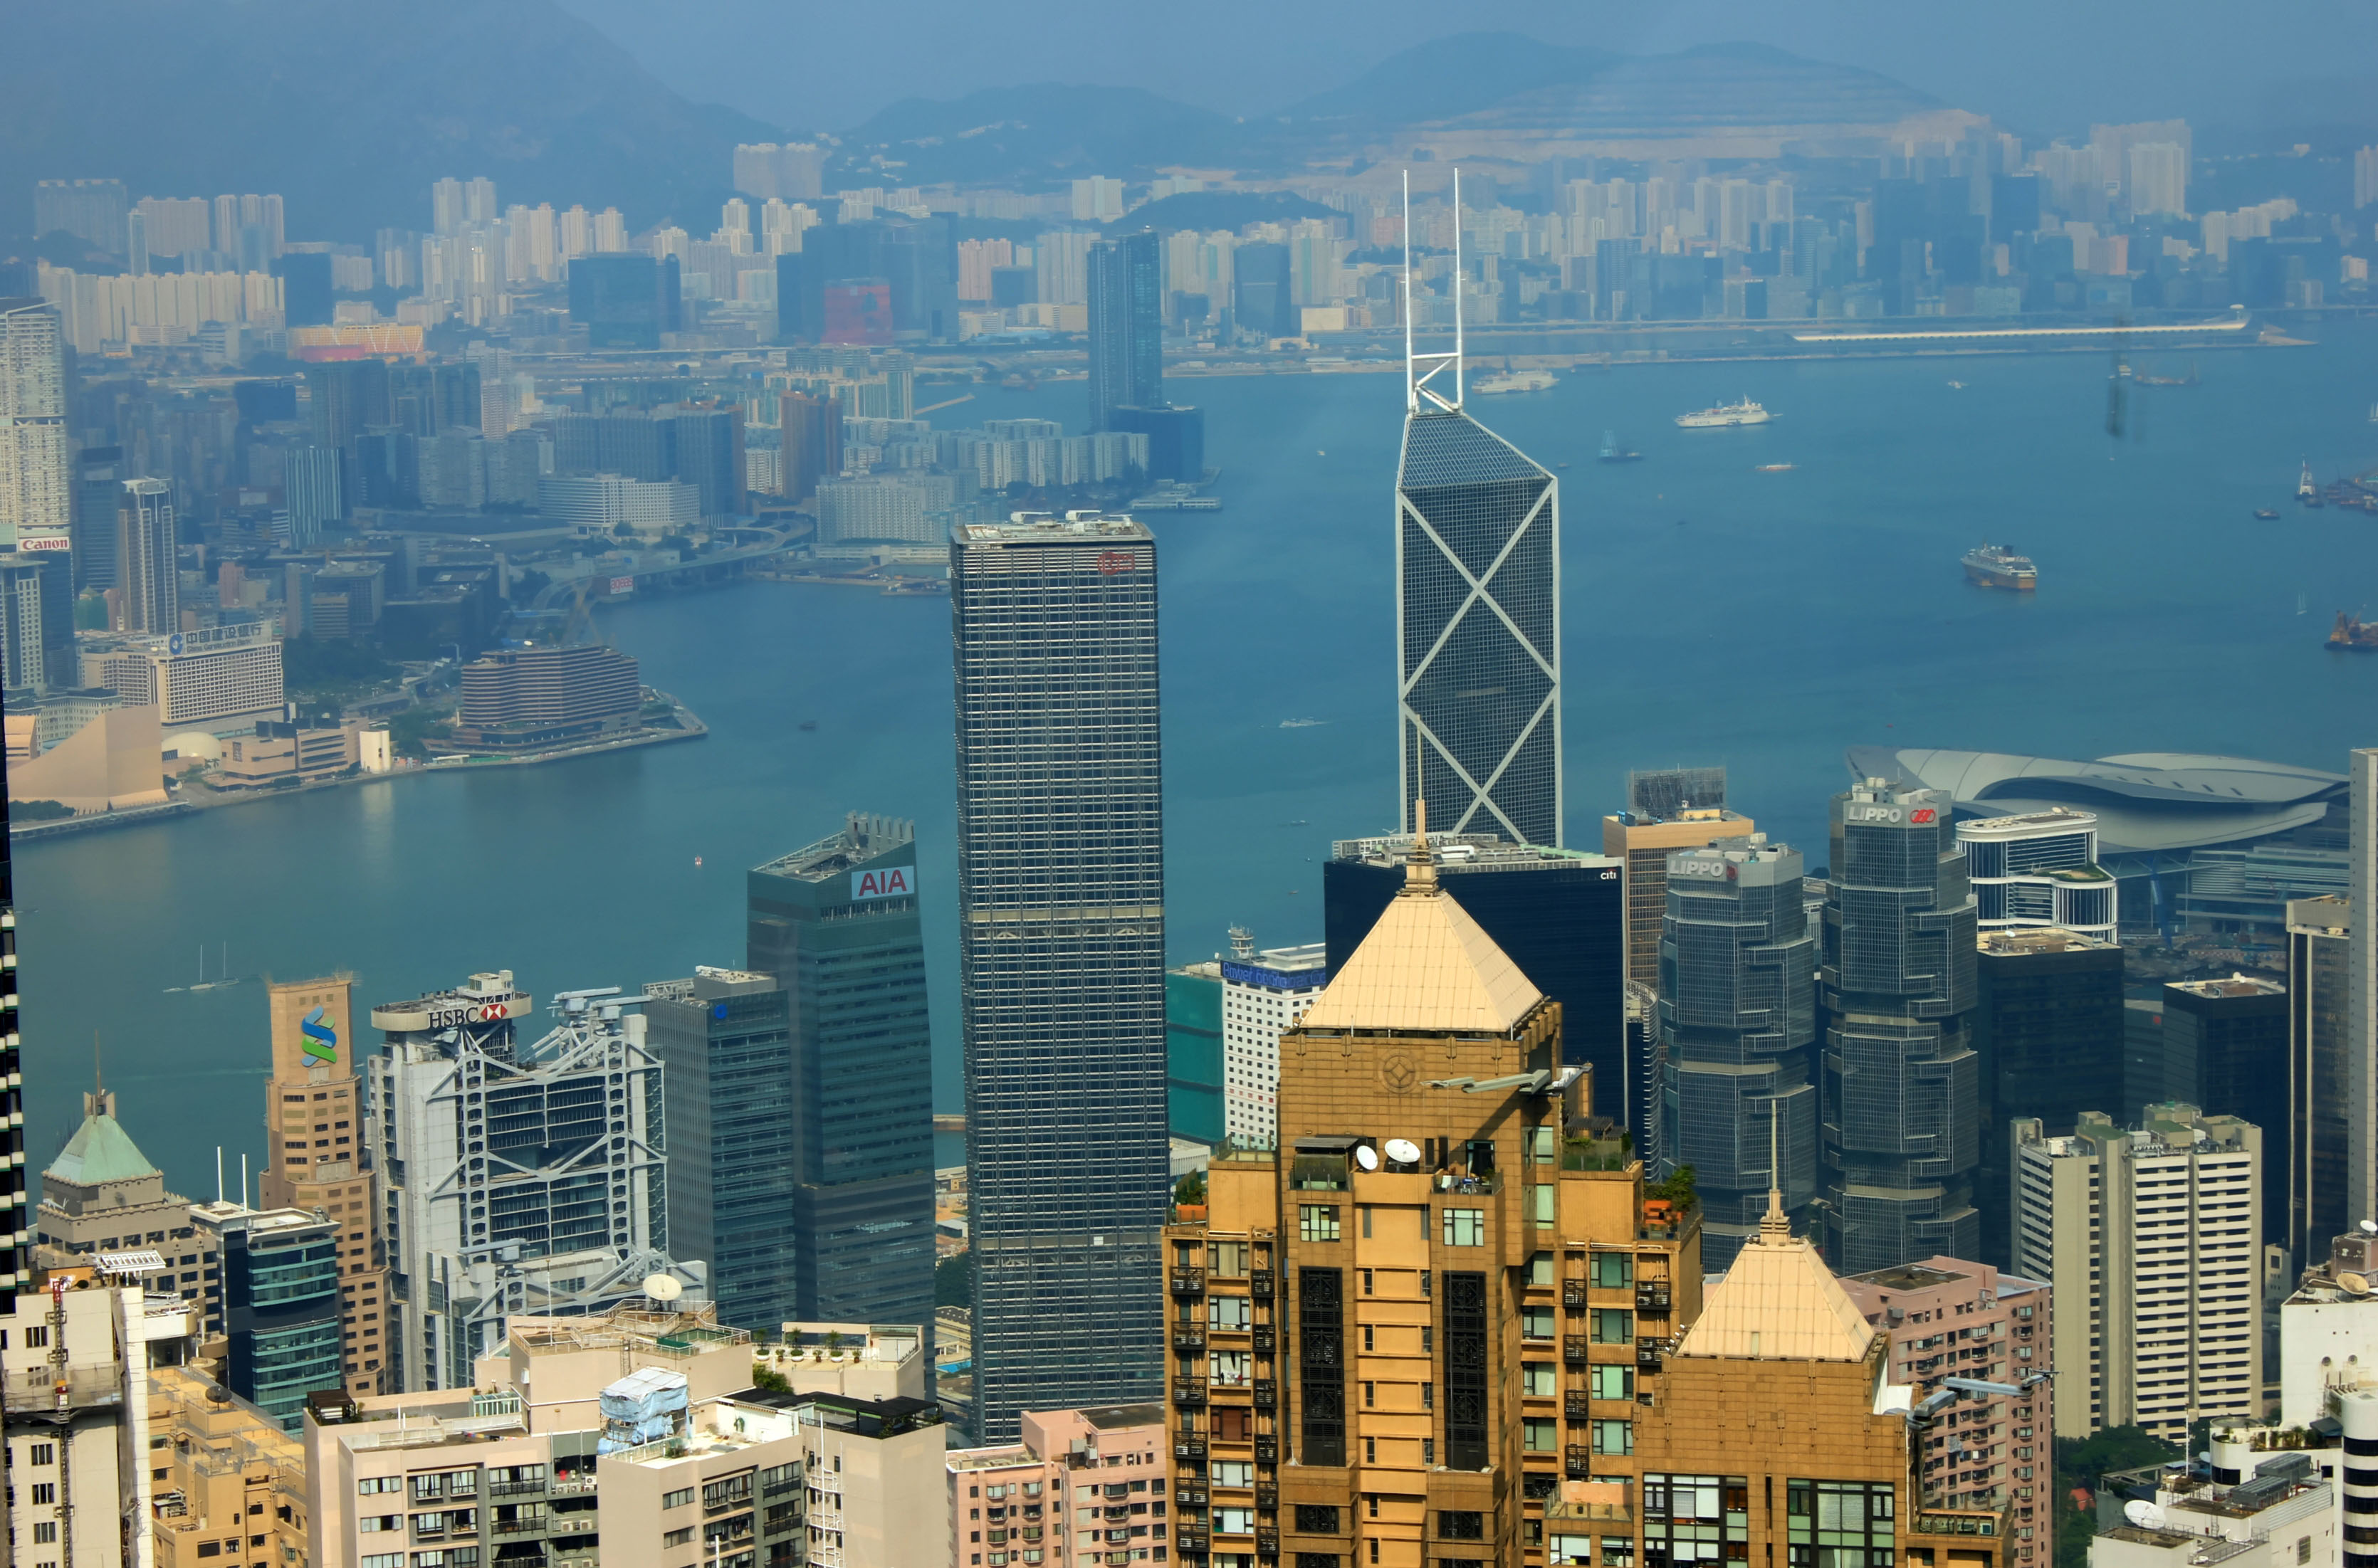 Direxion Daily FTSE China Bull 3x Shares ETF: The Perfect Timing To Buy Created By G20 Summit - Direxion Daily FTSE China Bull 3x Shares ETF (NYSEARCA:YINN)